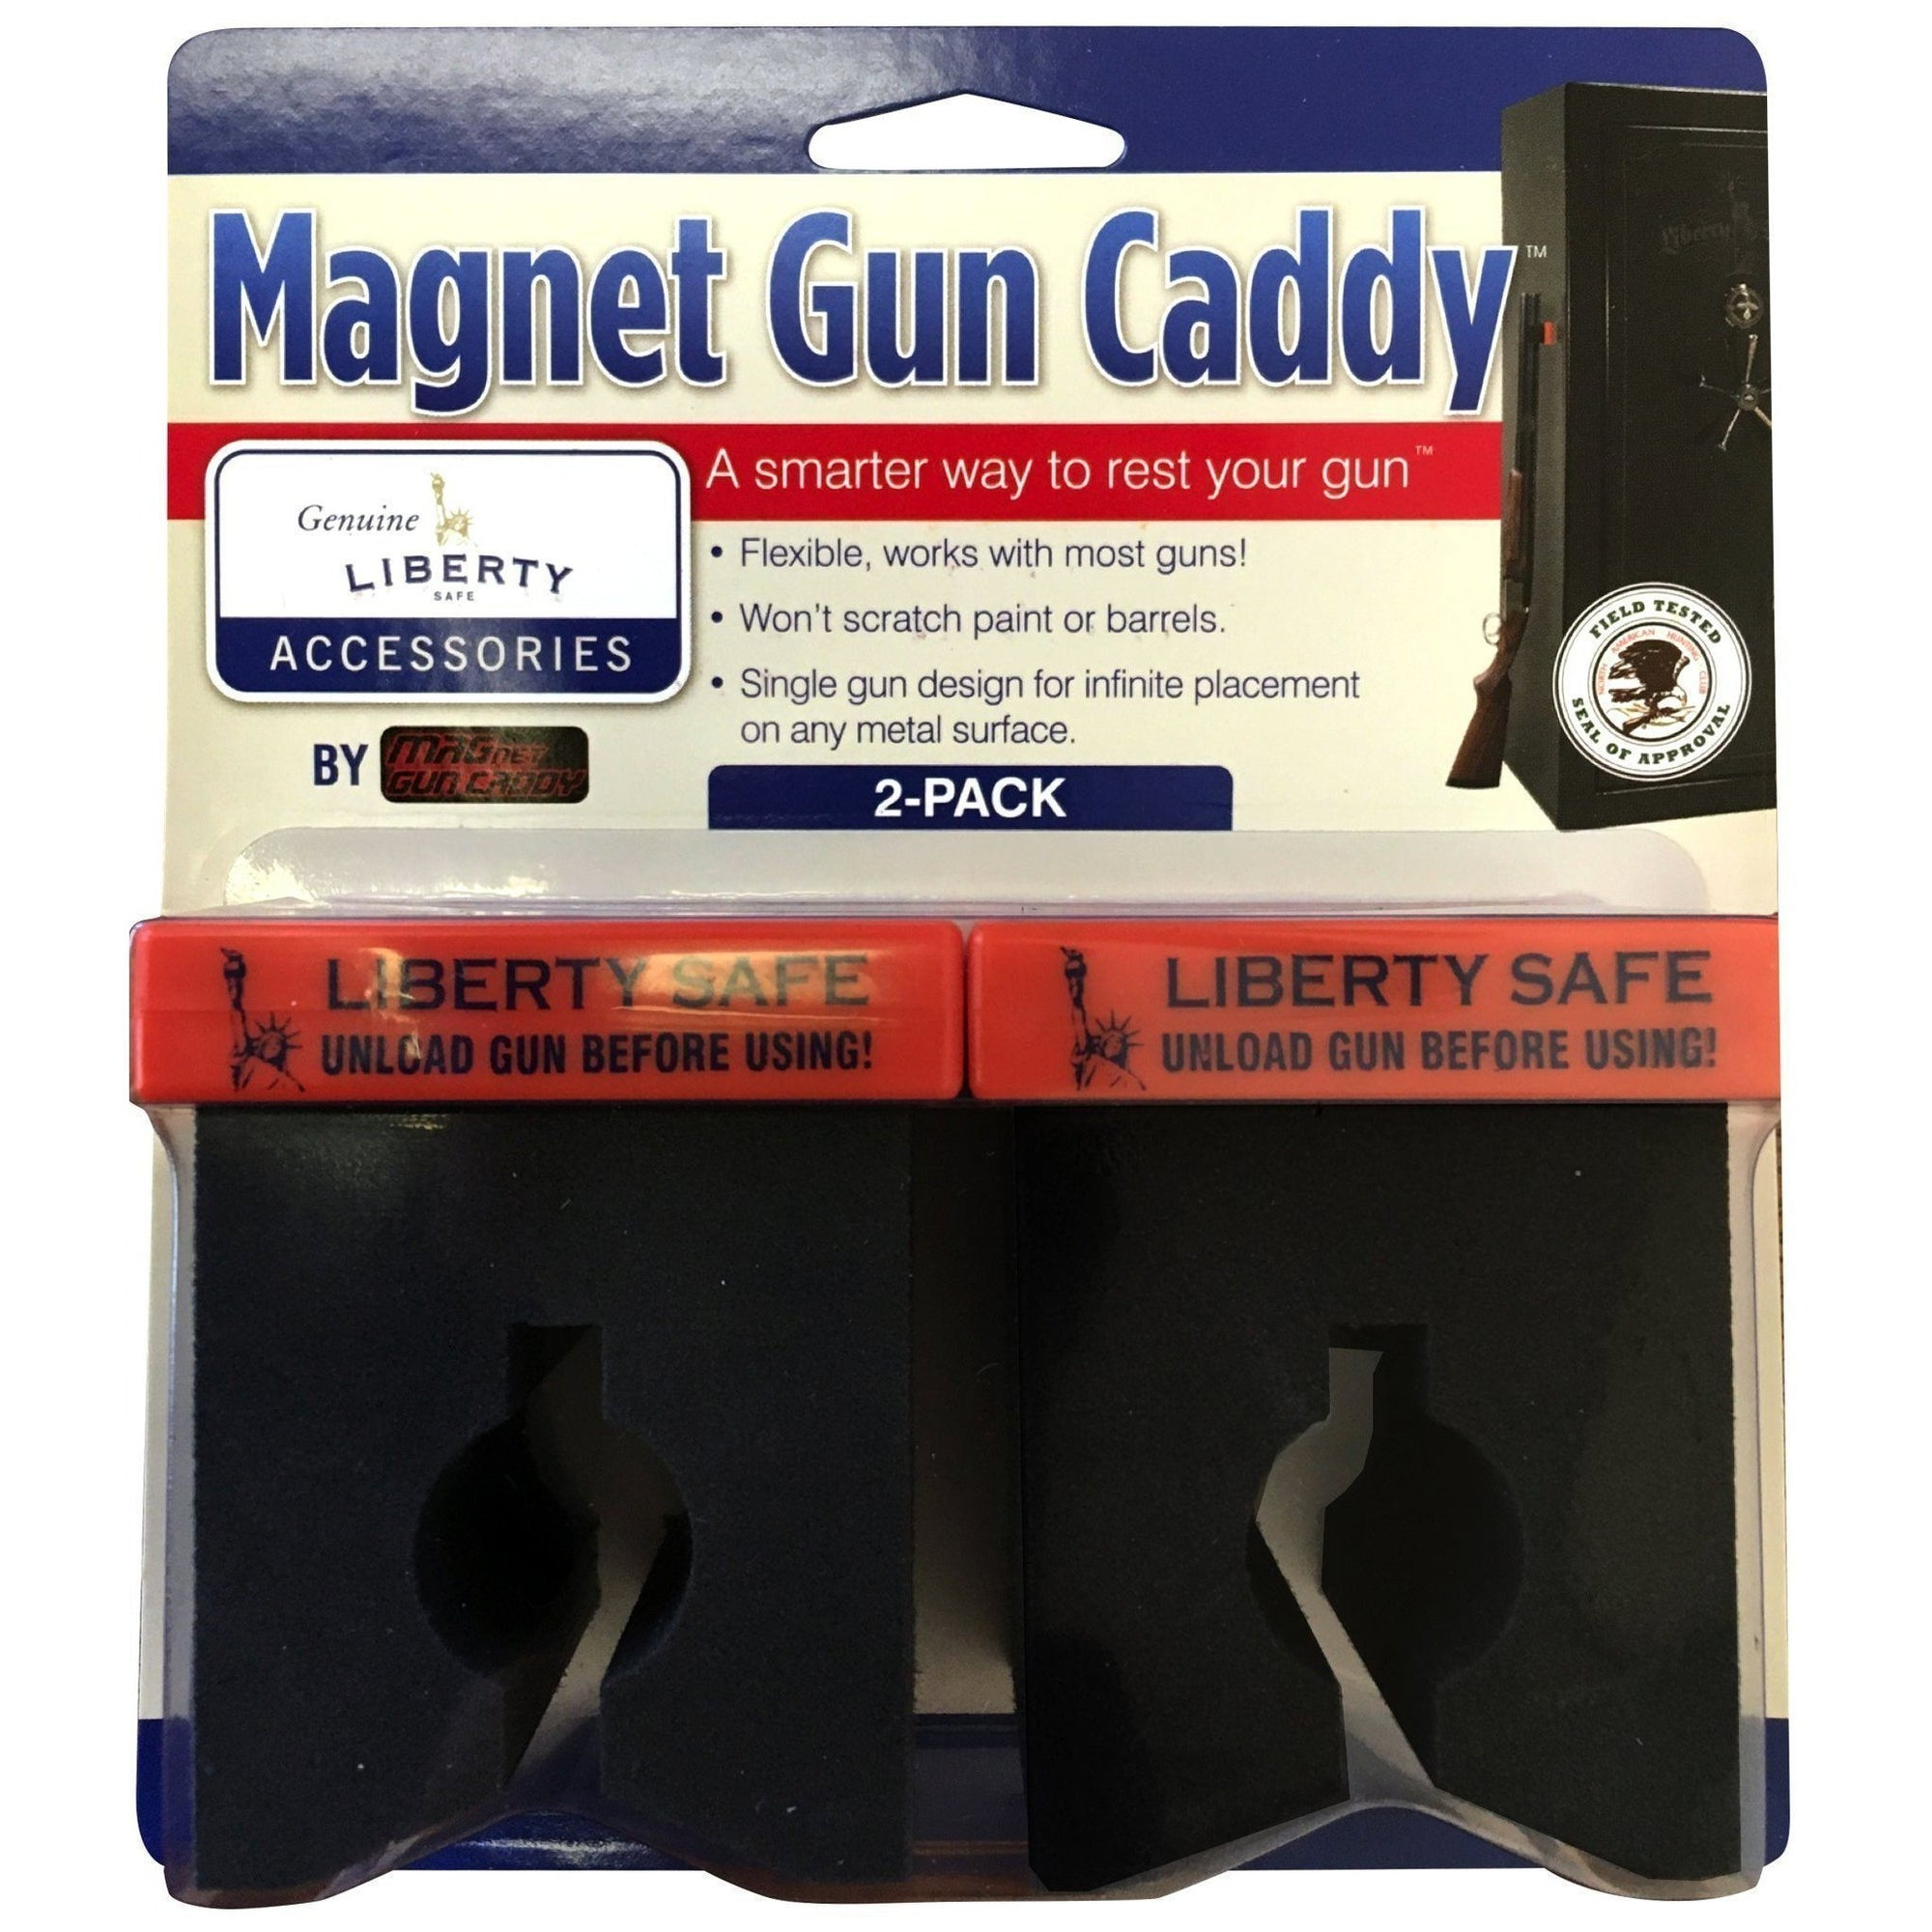 Accessory - Storage - Magnet Gun Caddy - 2 Pack